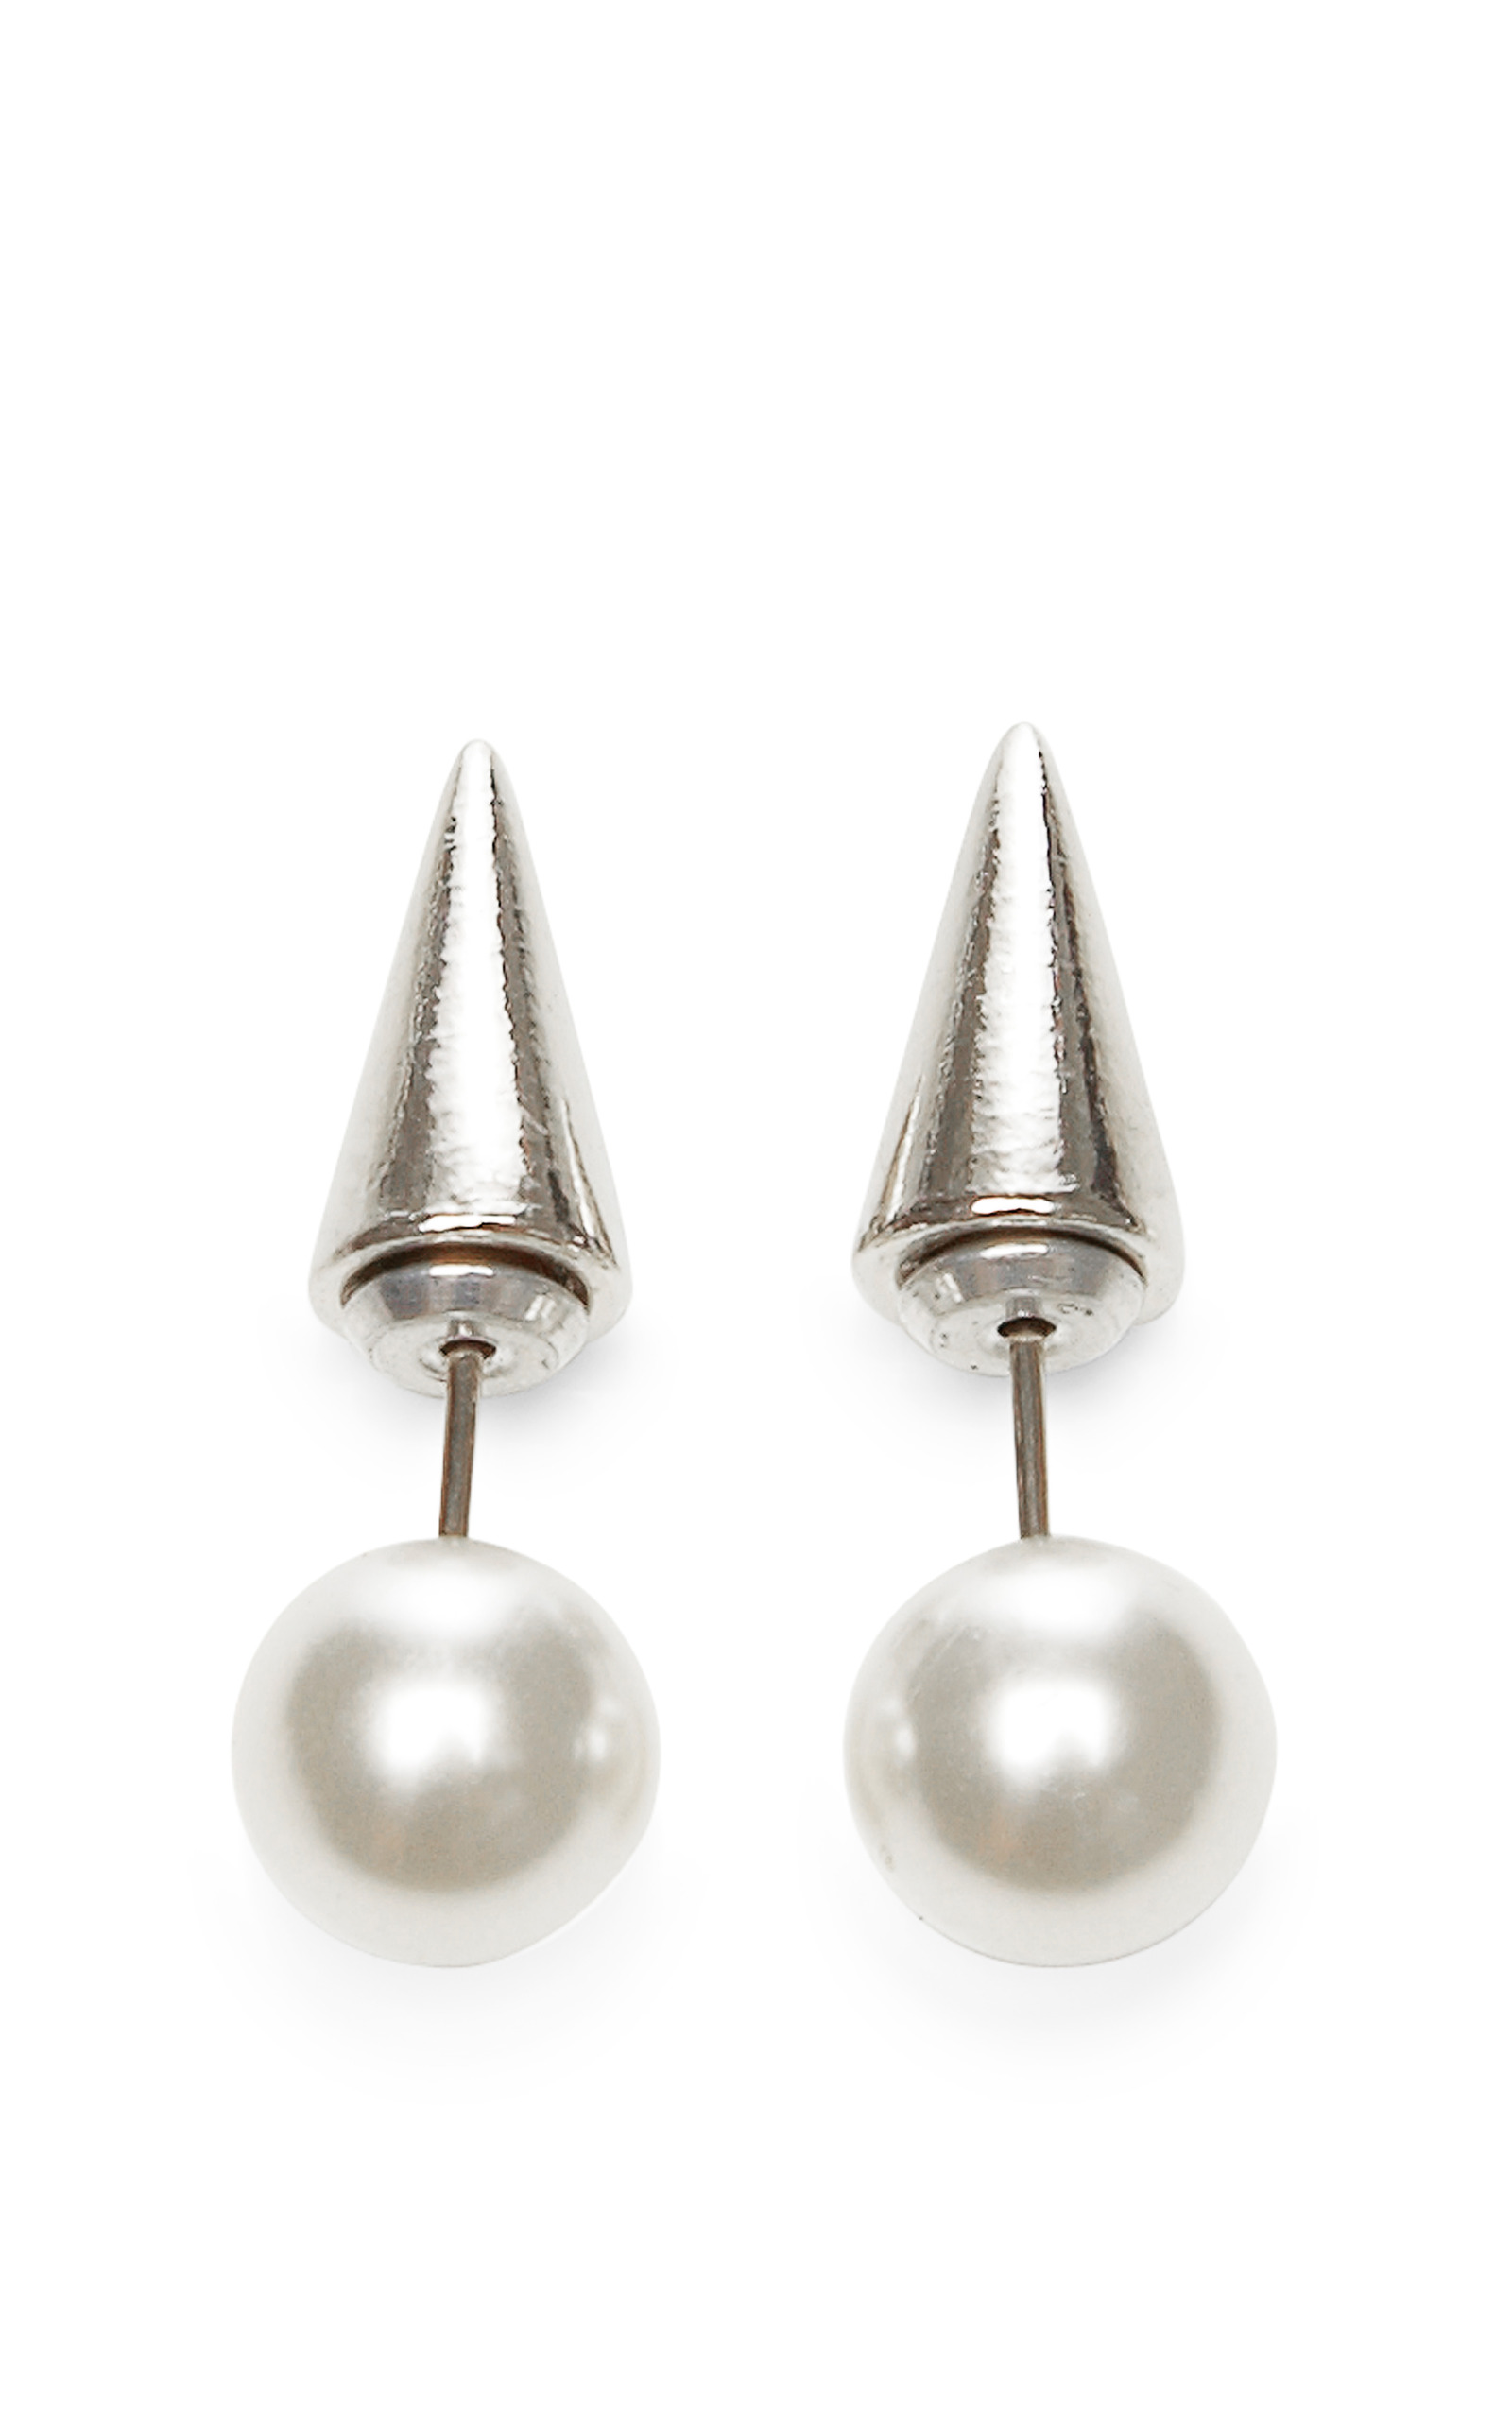 samples gallery victorian earrings llc swarovski anne pearls shop version dsc crystal gregory color pearl